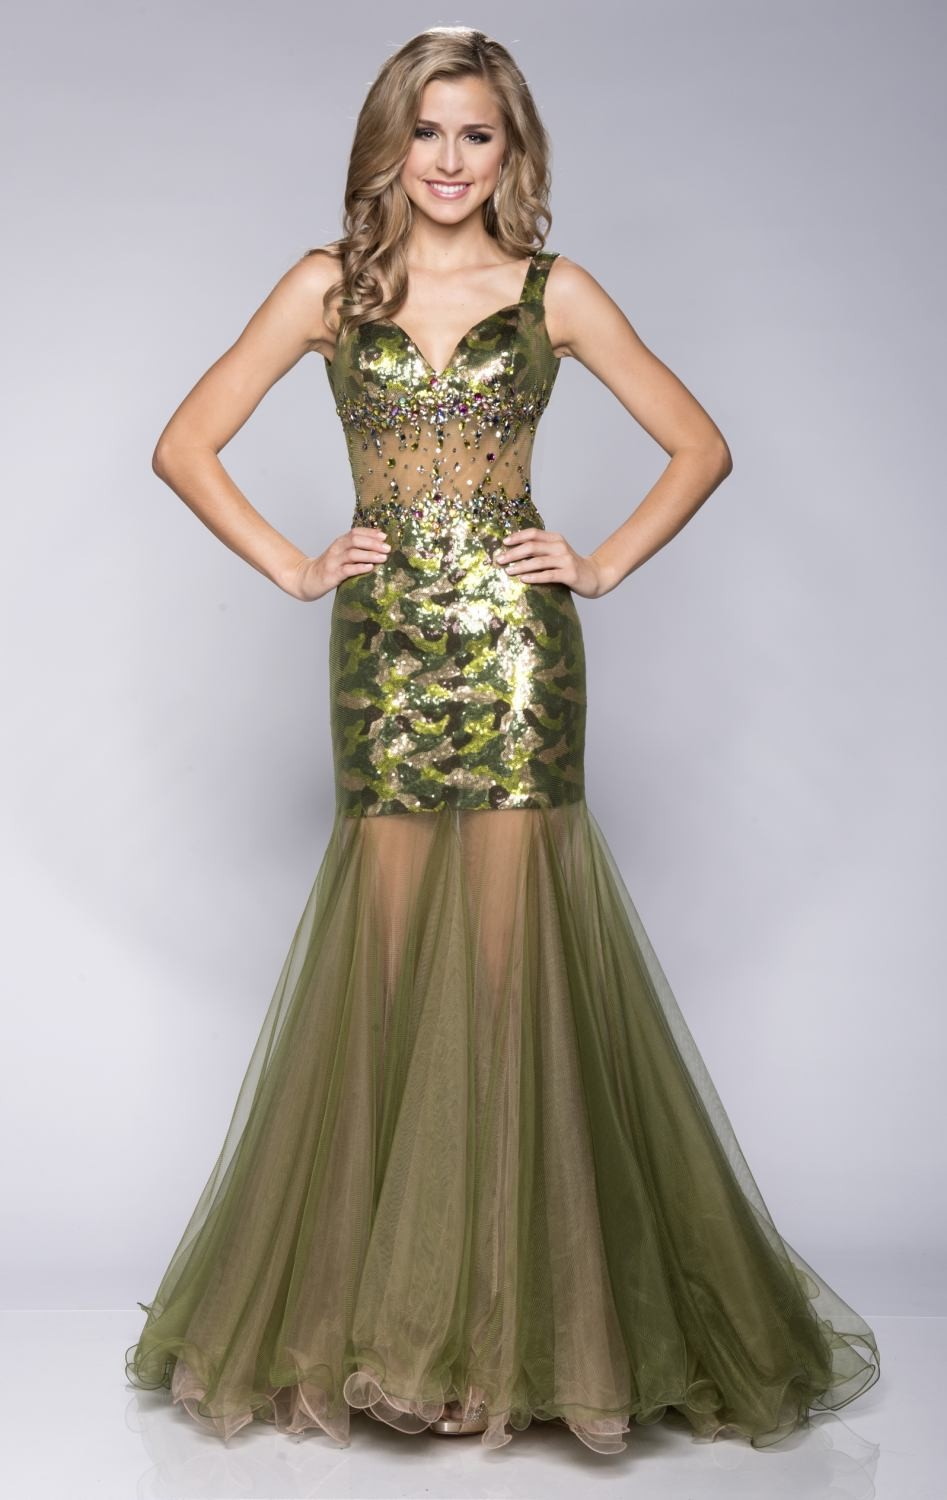 Camo Green prom dresses pictures advise to wear for on every day in 2019